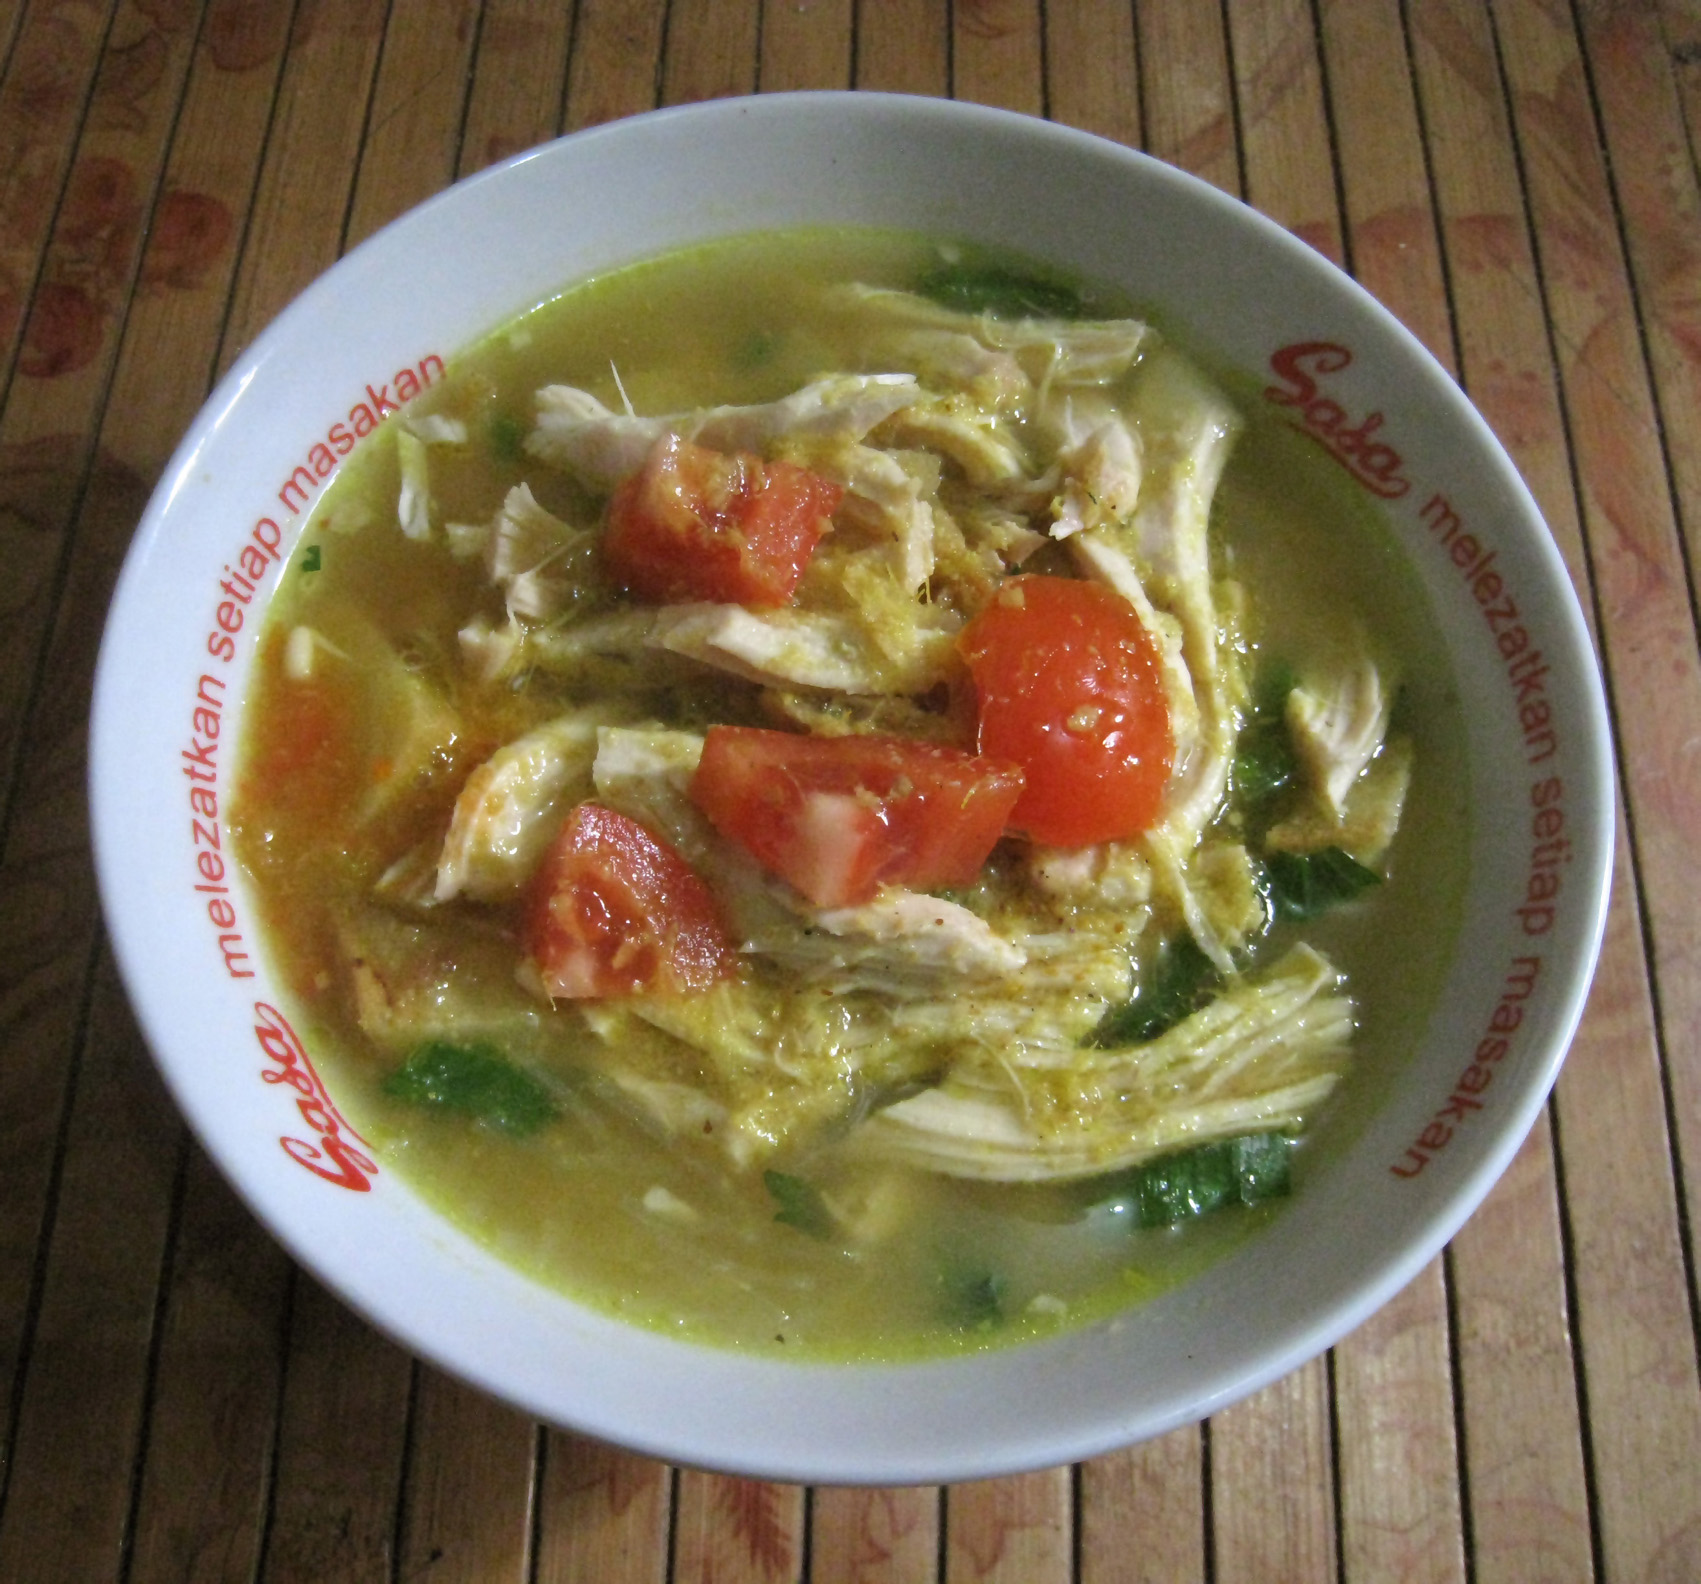 File:Soto Ayam home-made.JPG - Wikimedia Commons